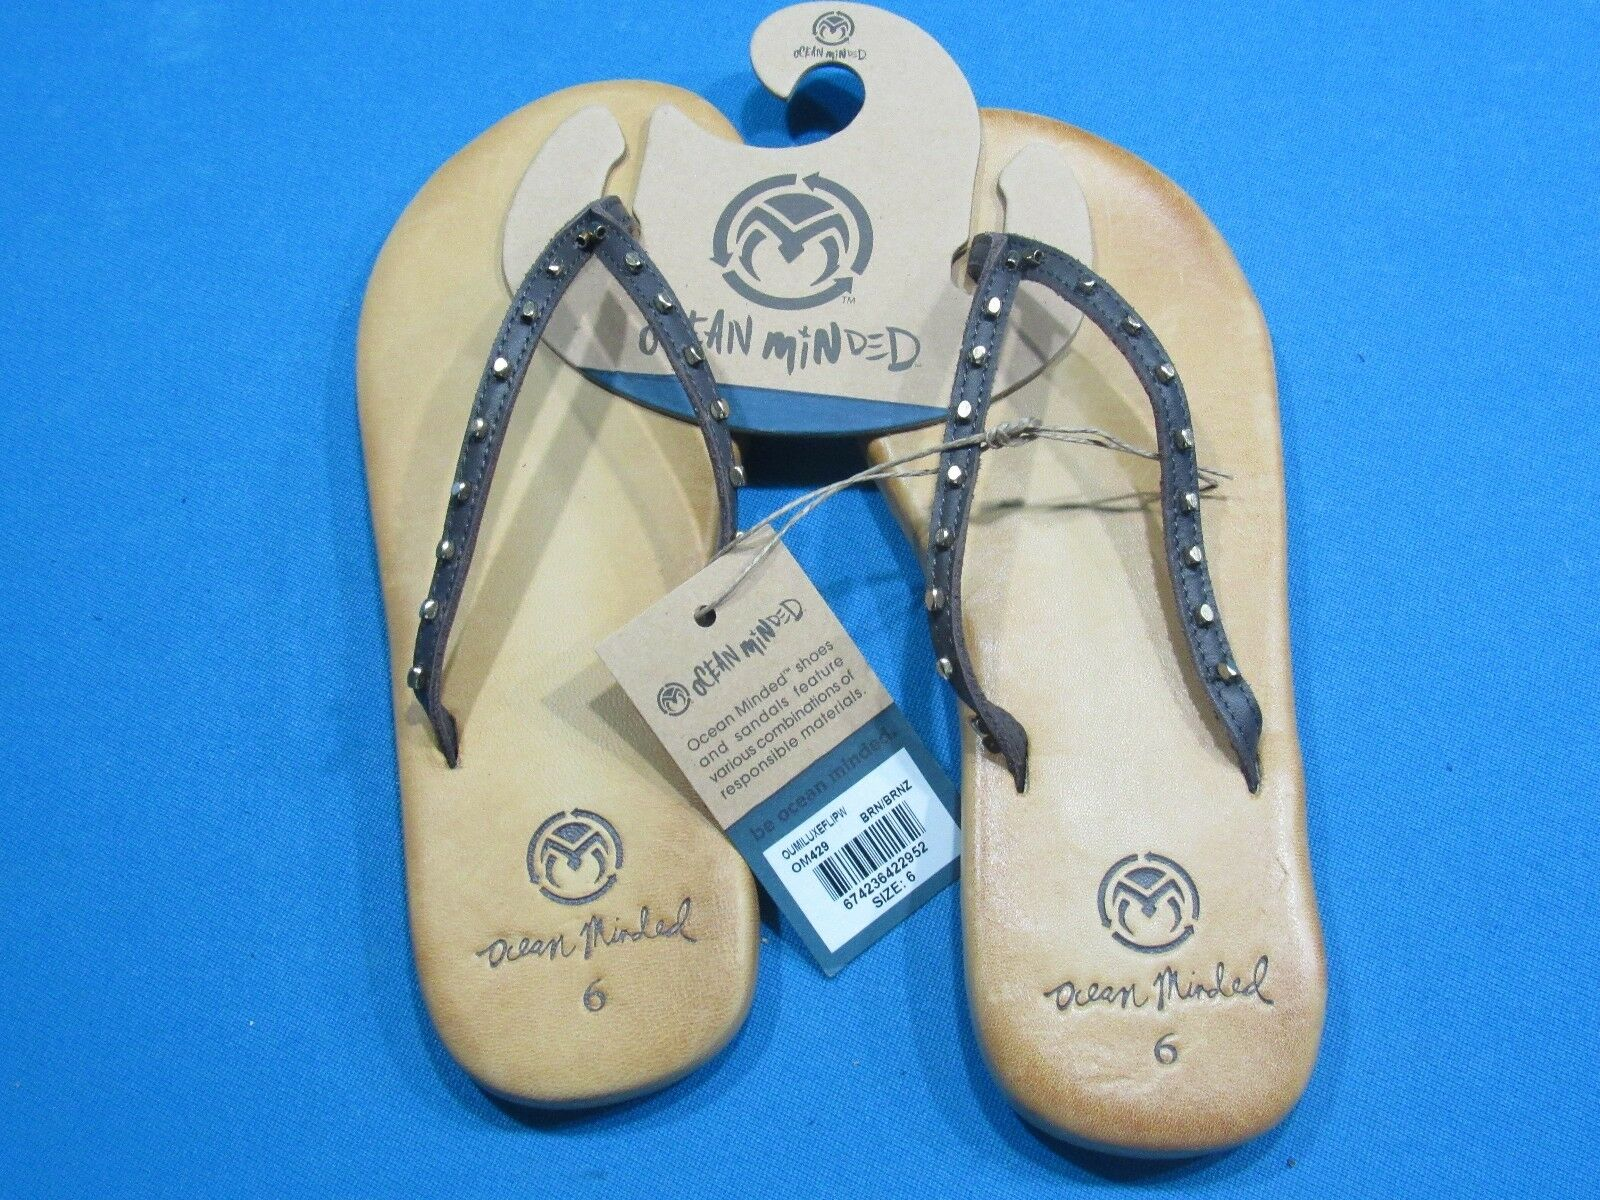 OCEAN MINDED SIZE - OUMI LUXE - SIZE MINDED 6 - NWT - FLATS 725cba